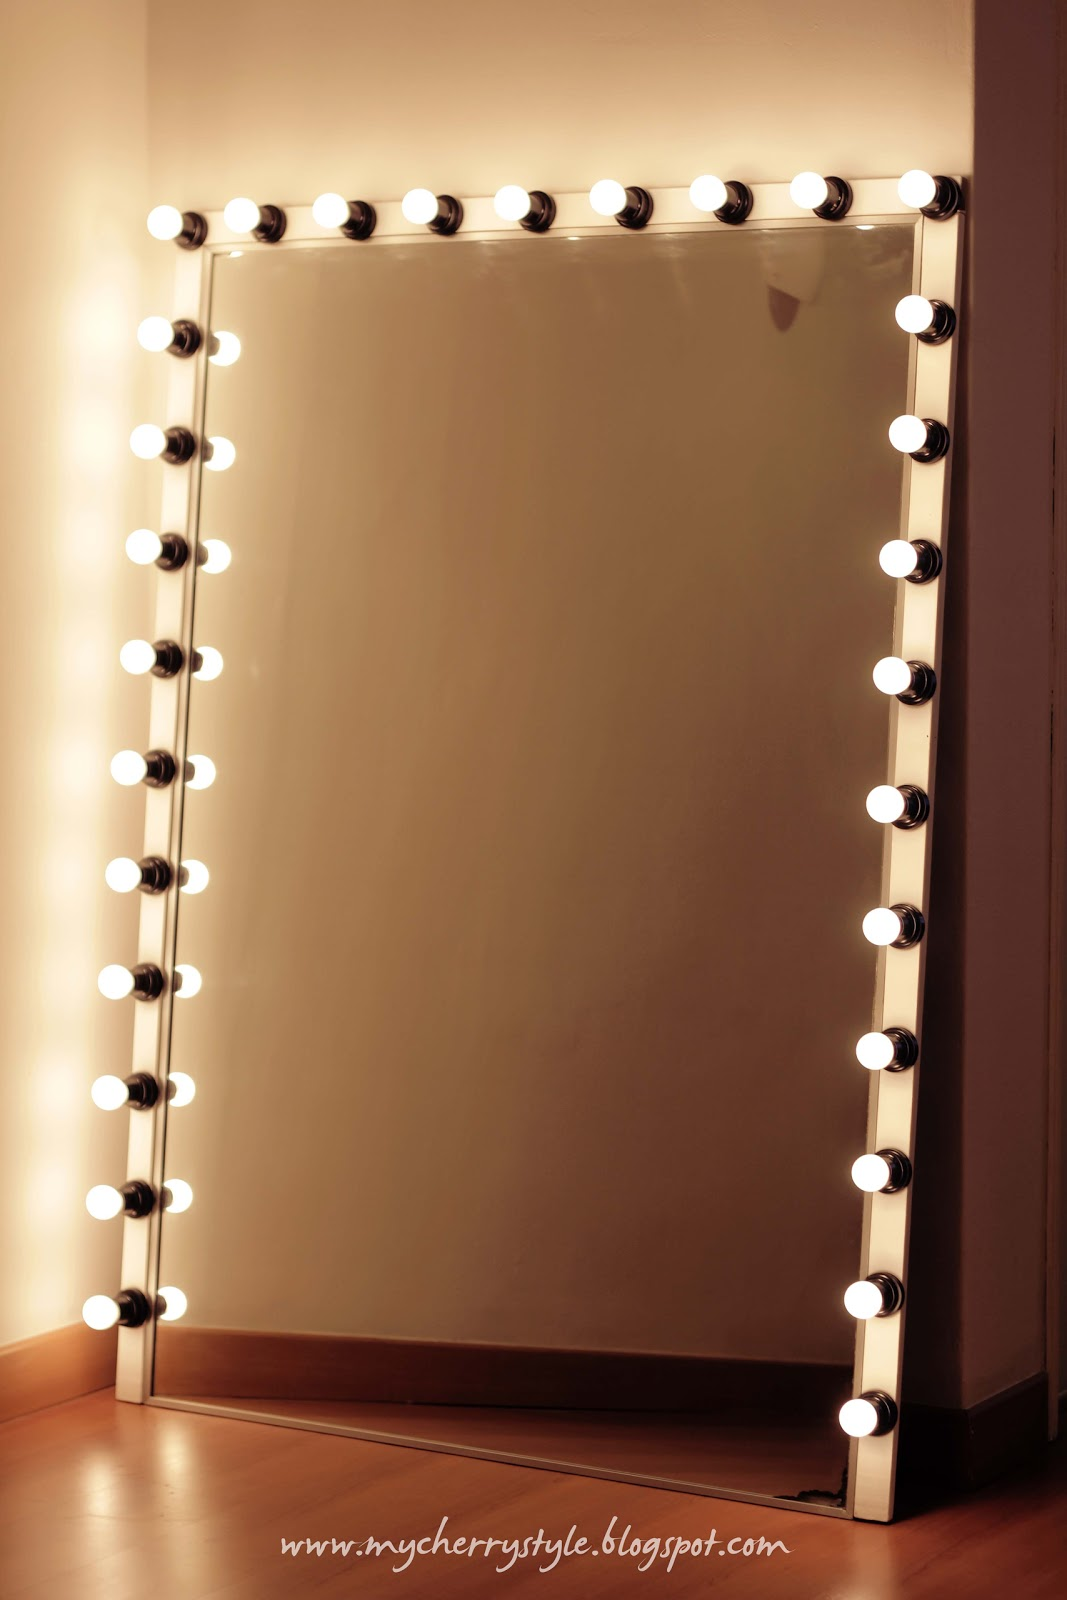 Diy Makeup Mirror With Lights - Makeup Vidalondon